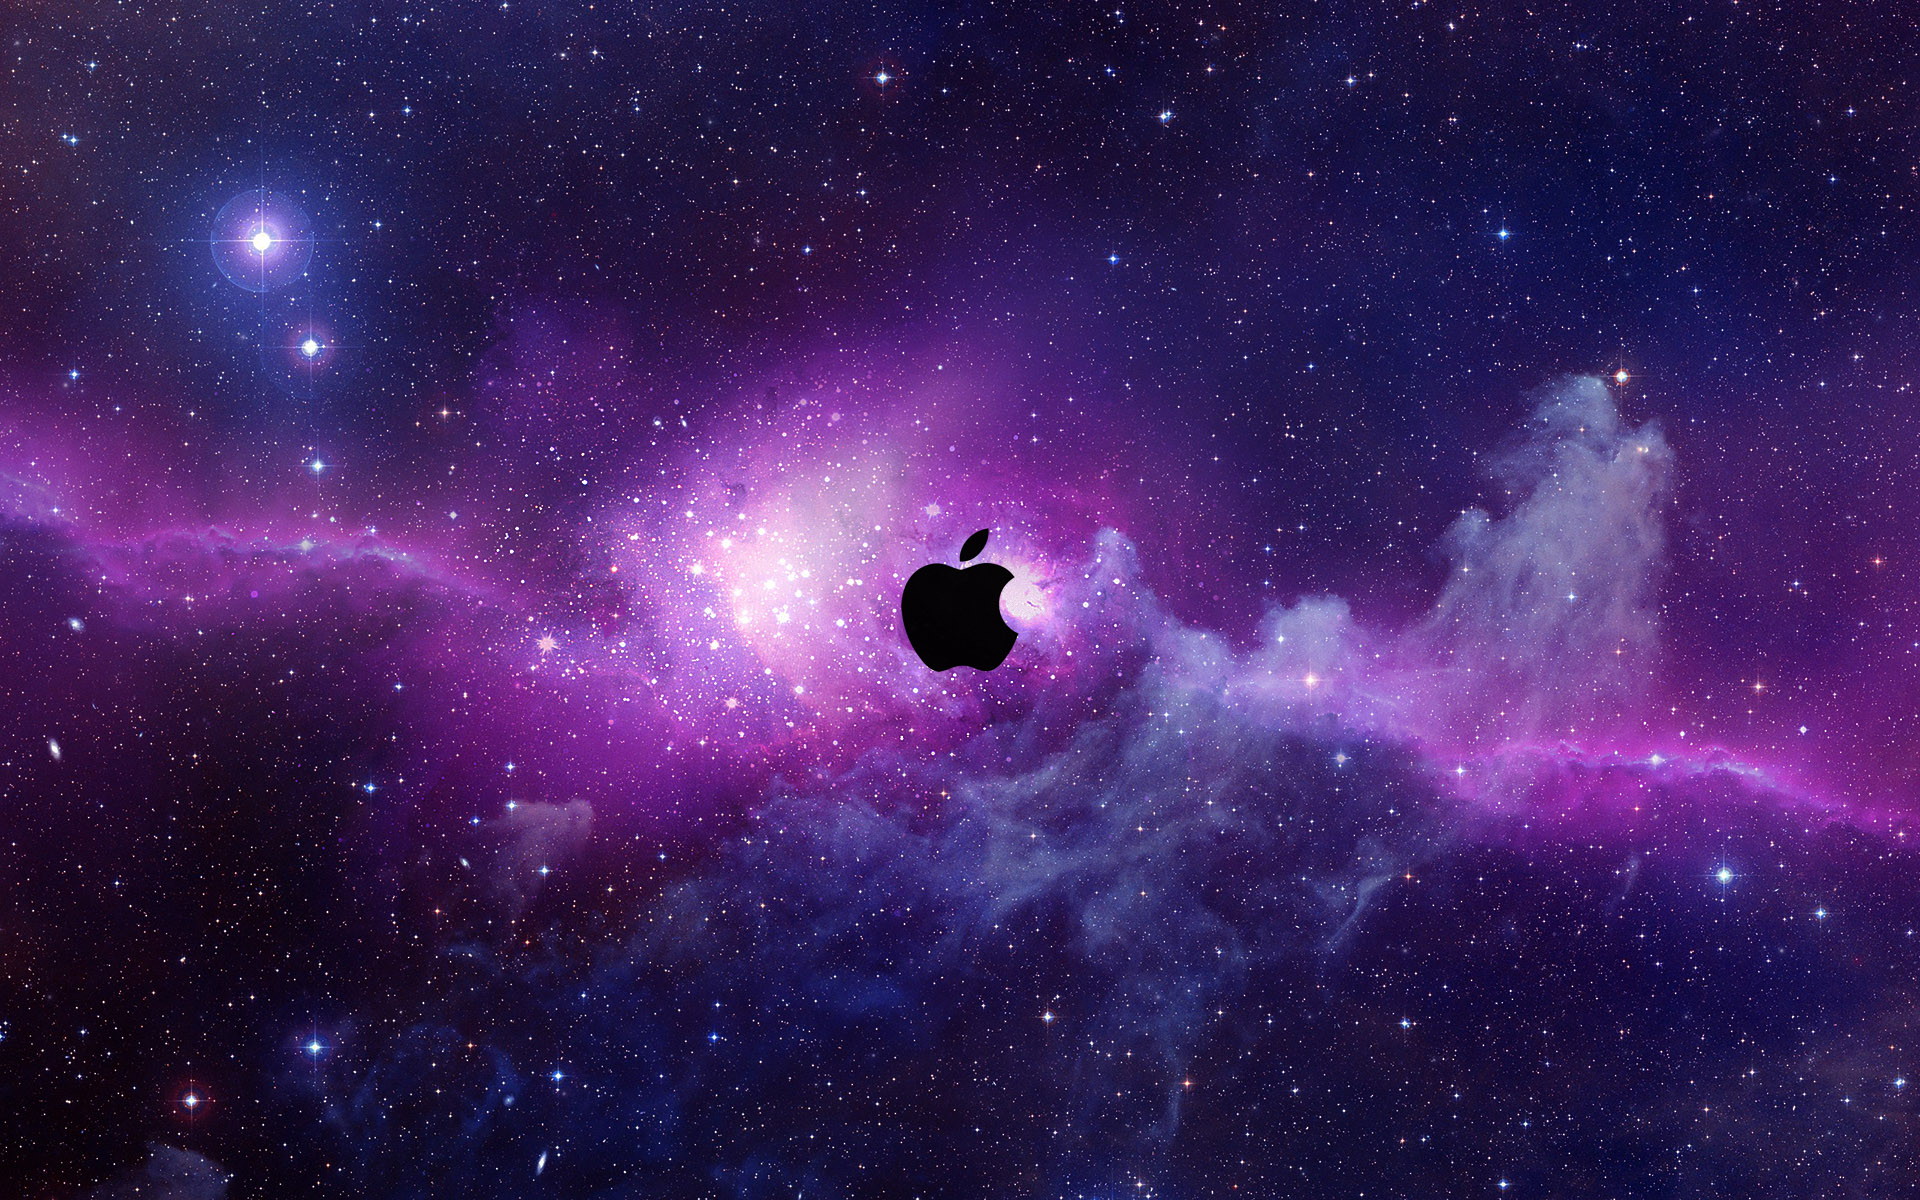 hq hd wallpaper 16 500x312 20 Elegant Apple Mac HD Wallpapers Set 3 1920x1200